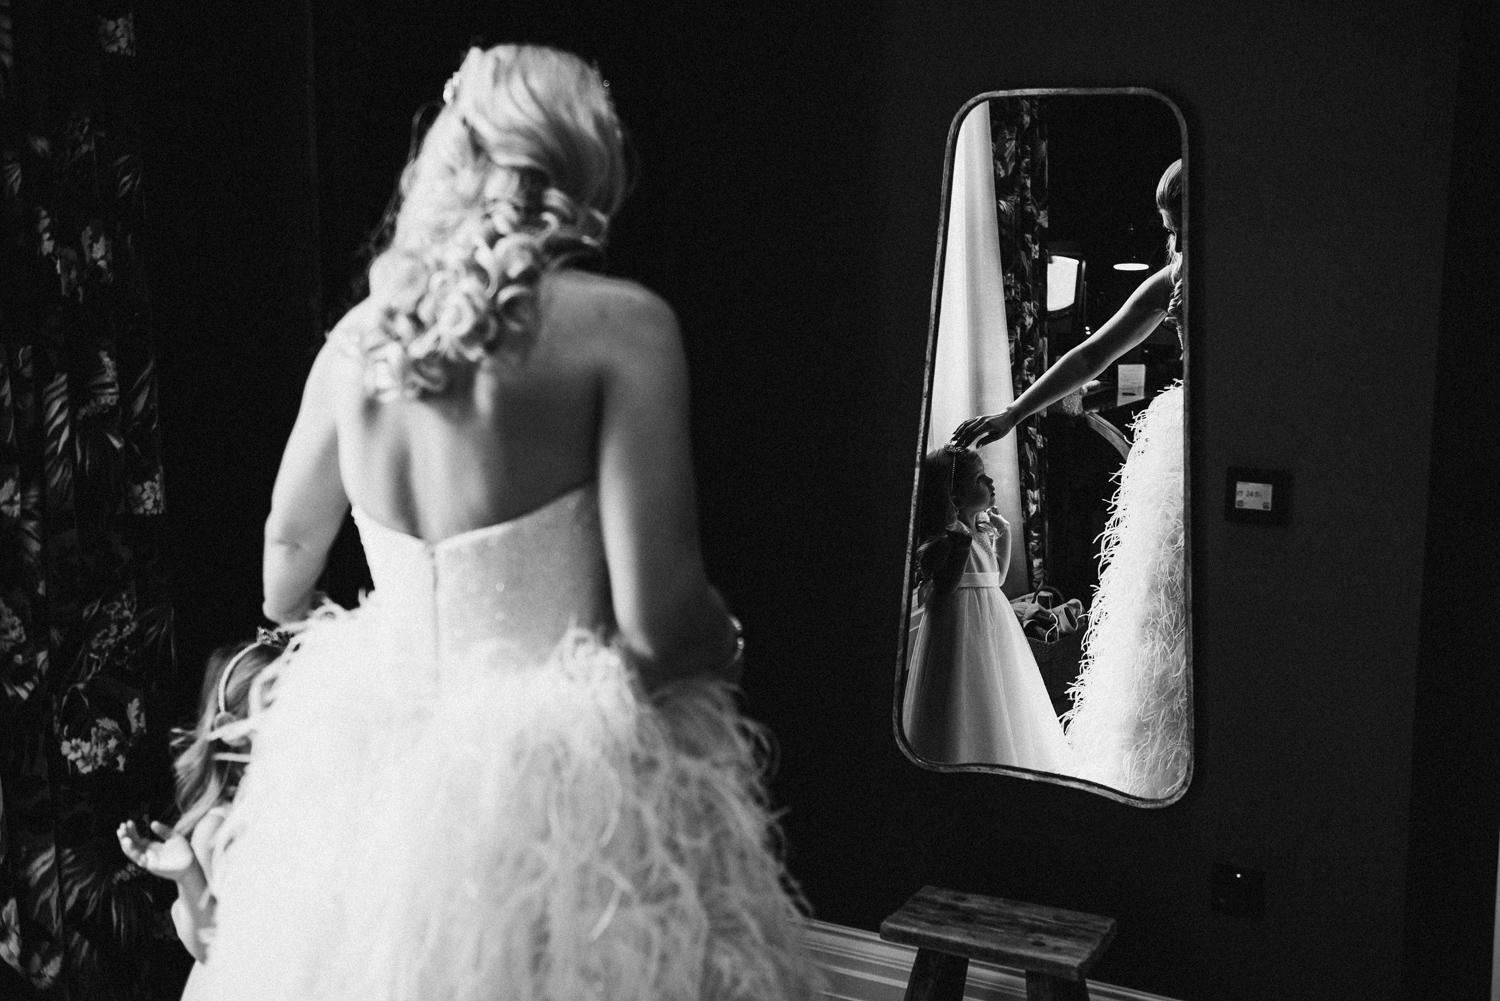 Touching moment between bride and her daughter